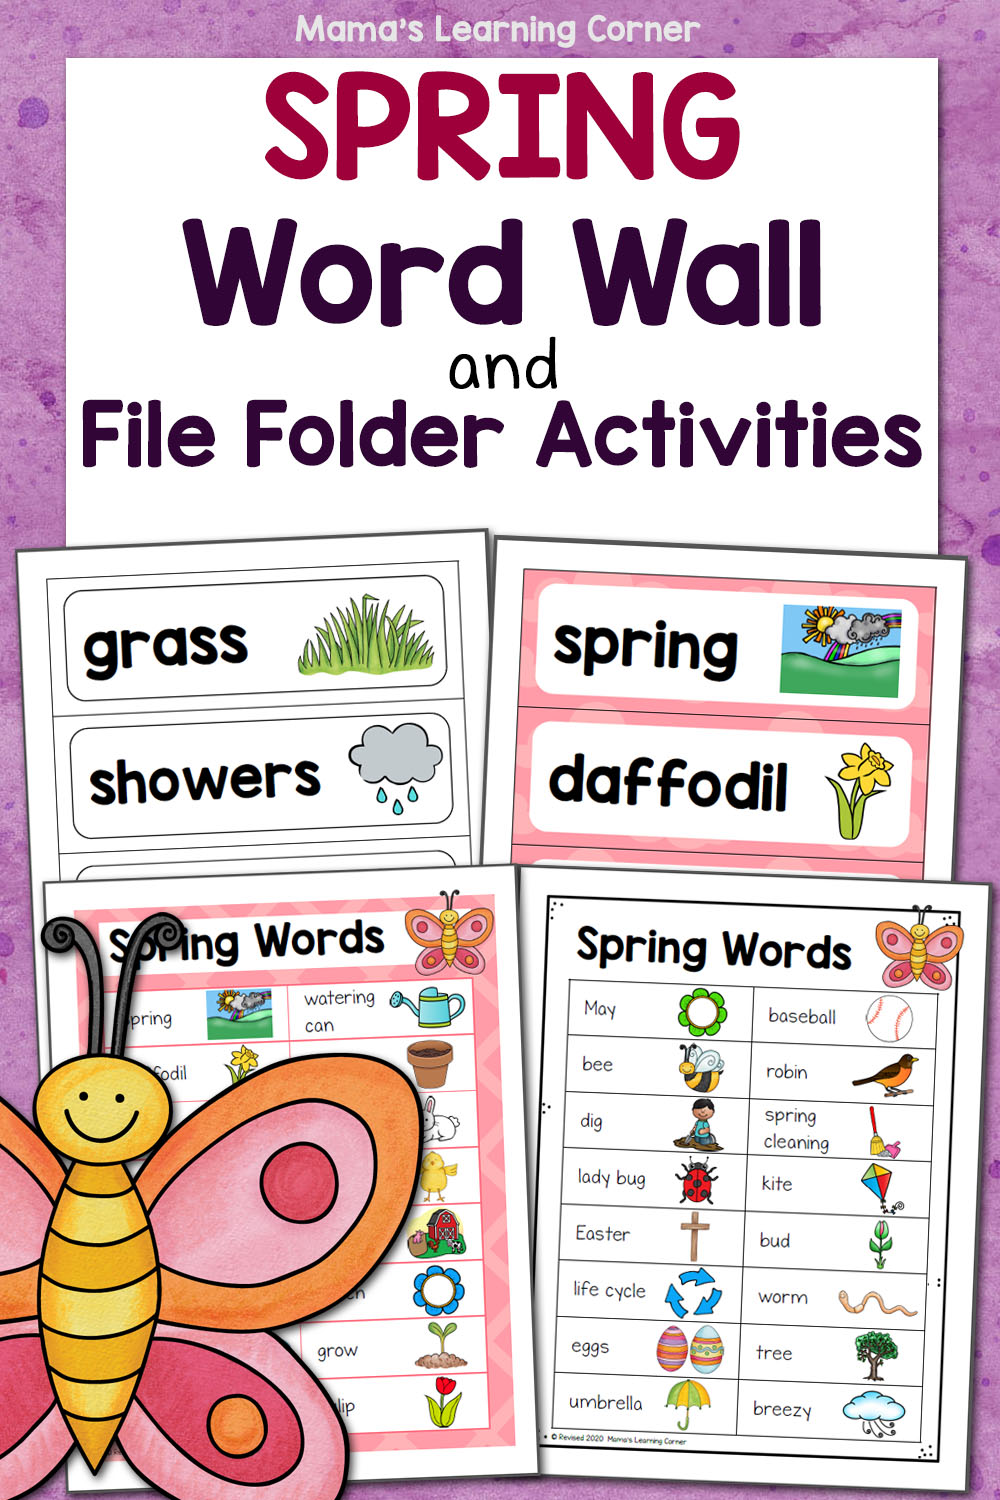 medium resolution of Spring Word Wall with File Folder Activities - Mamas Learning Corner